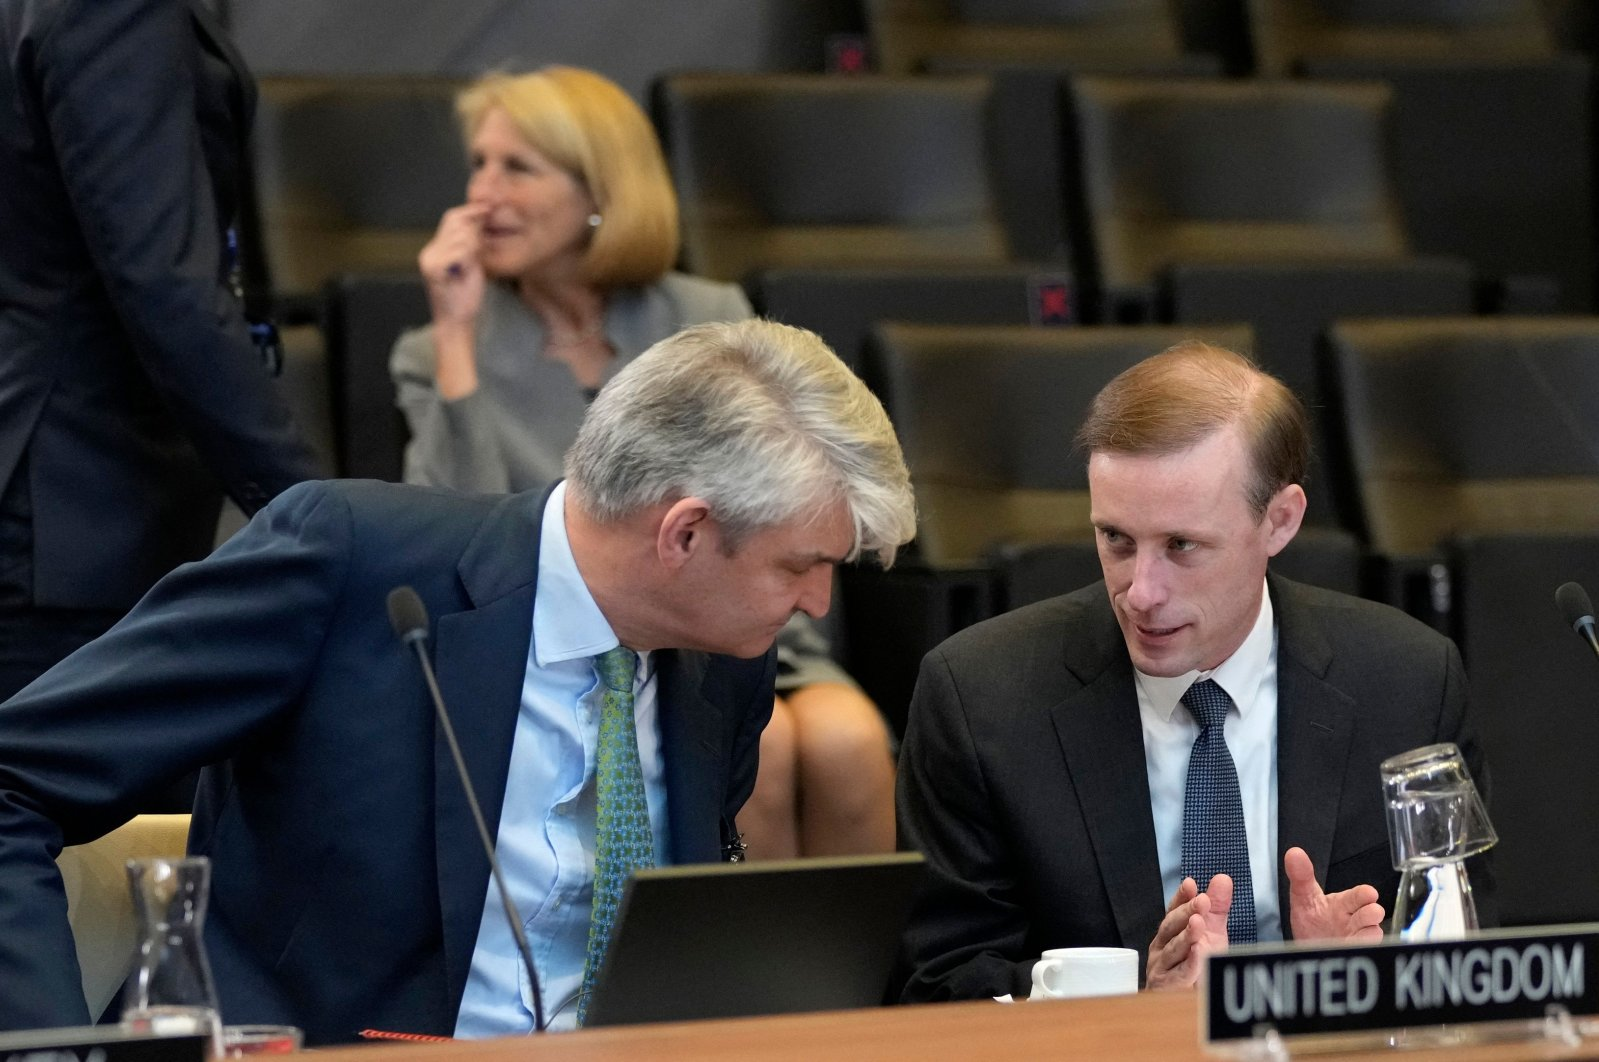 United States National Security Advisor Jake Sullivan (R) speaks with Britain's National Security Advisor Sir Stephen Lovegrove during a meeting of National Security Advisors at NATO headquarters in Brussels, Belgium, Oct. 7, 2021. (AFP Photo)